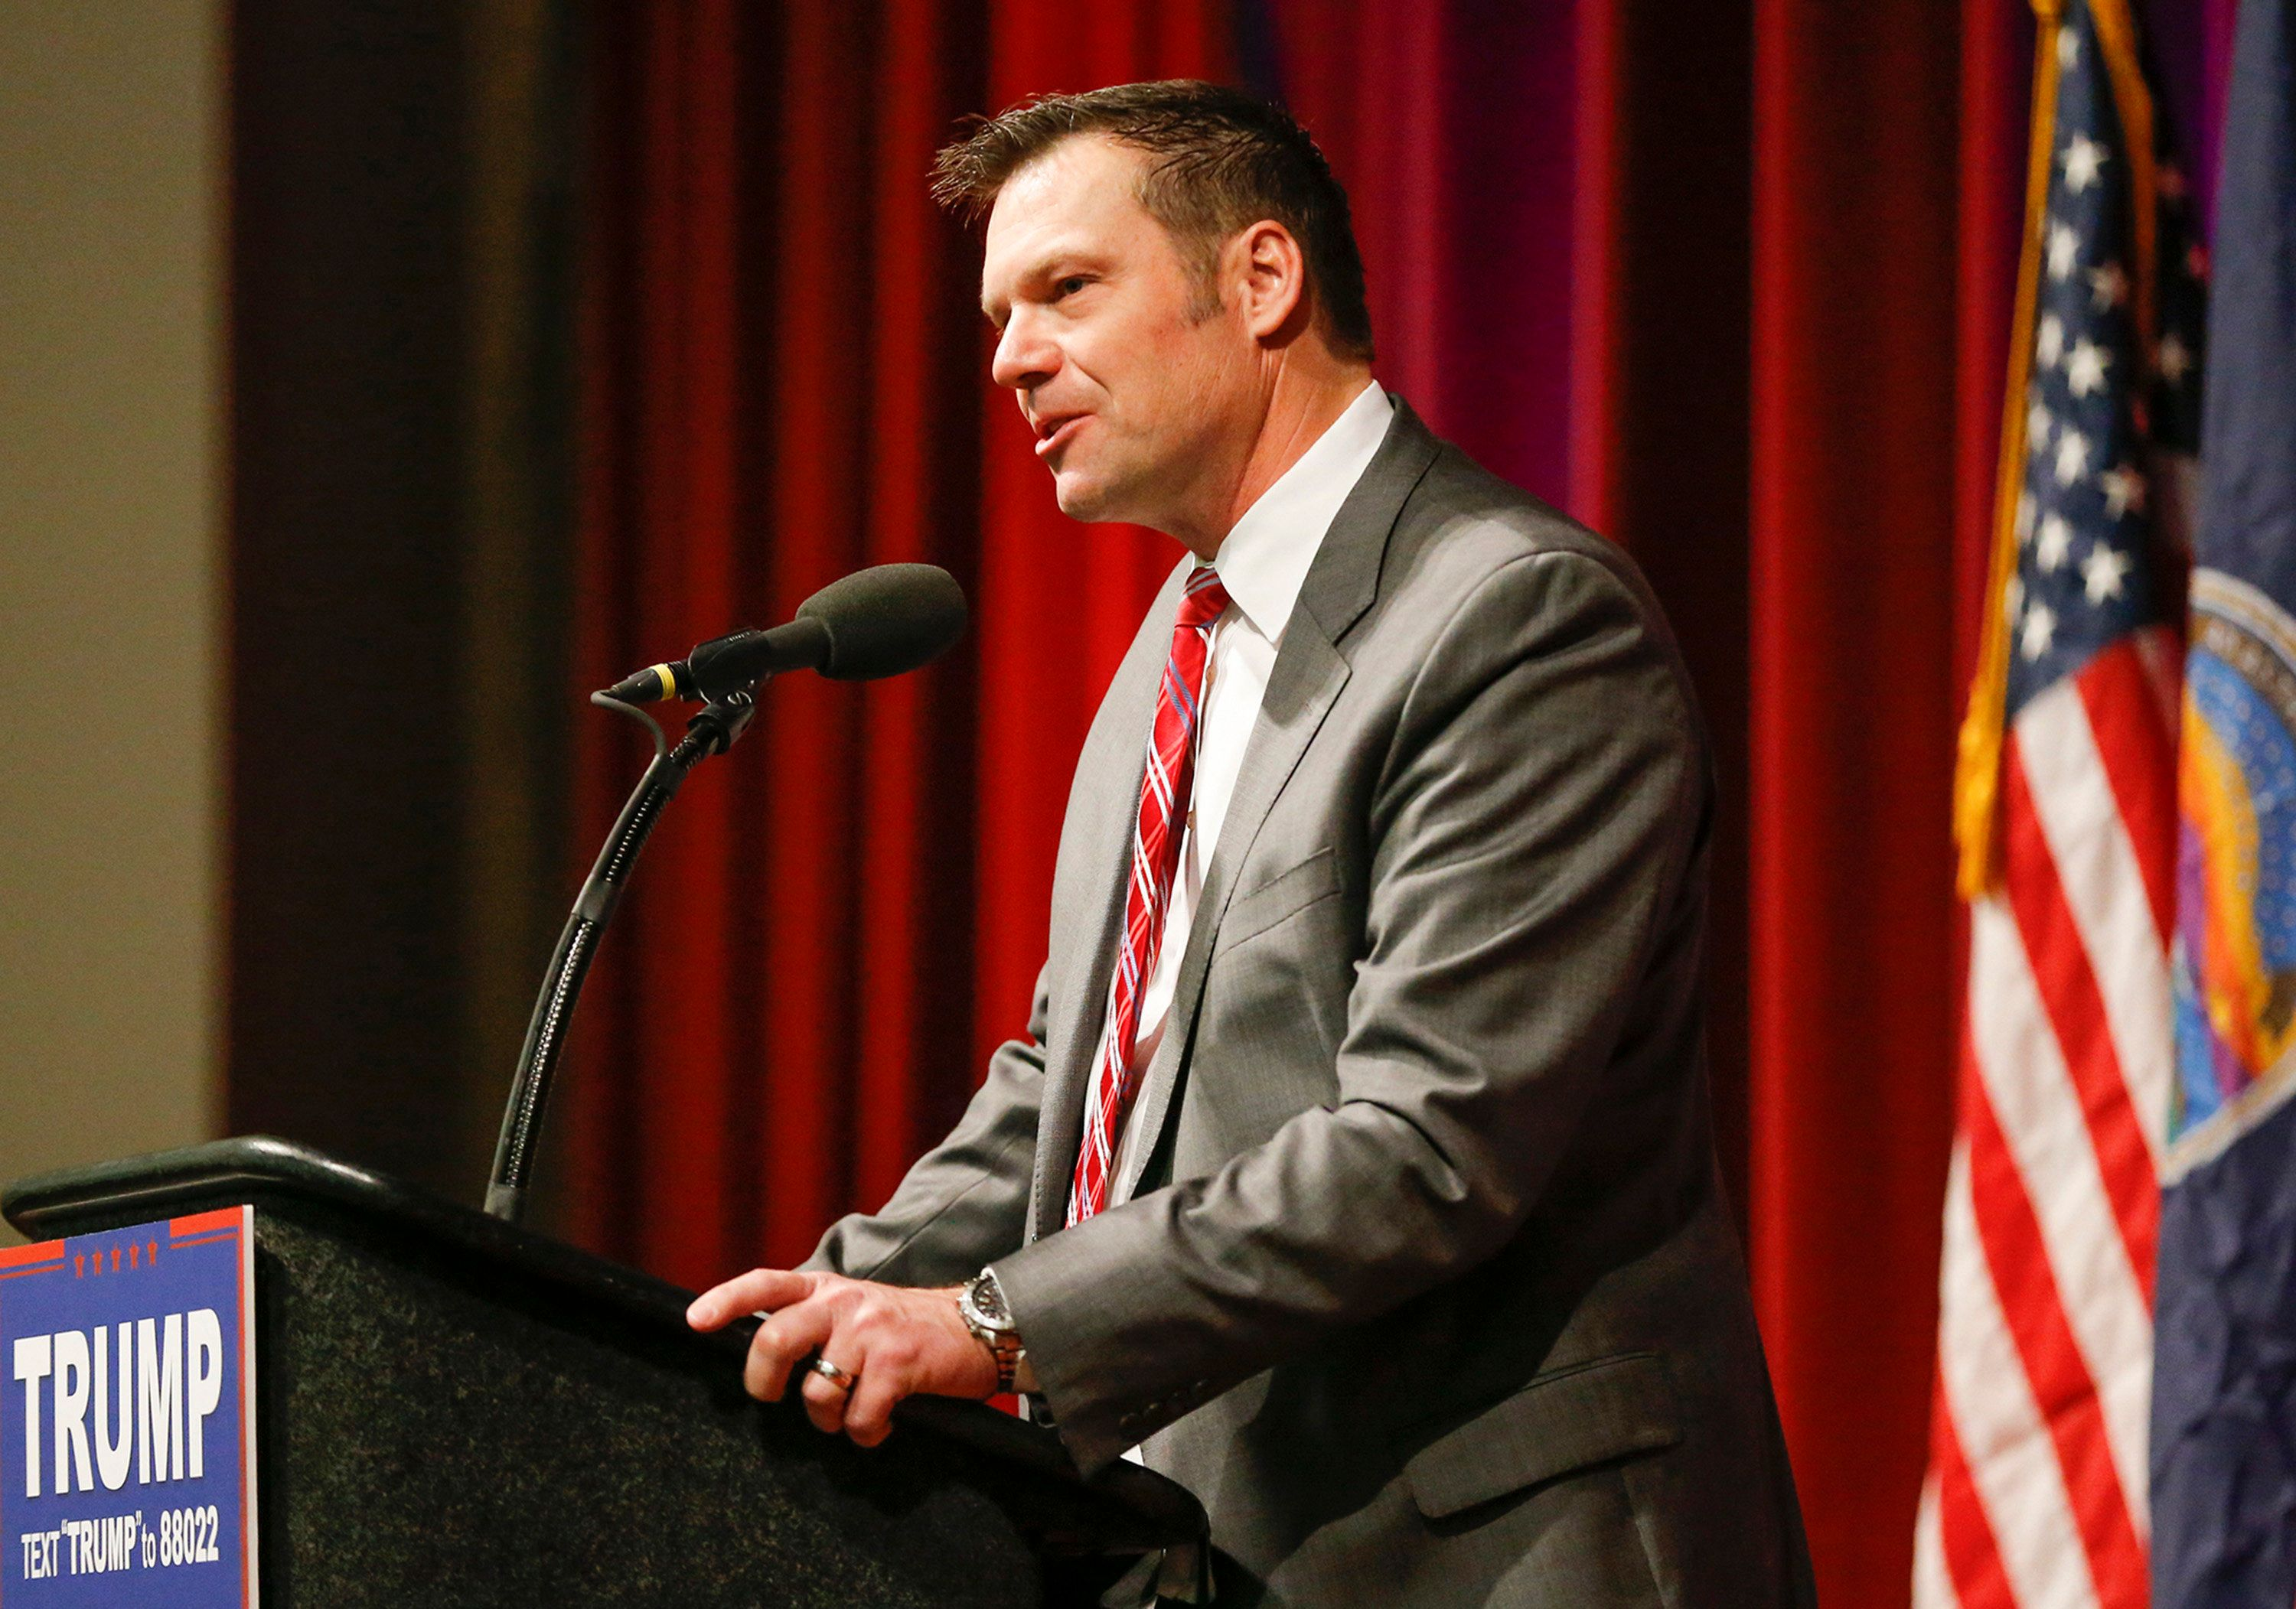 Why Kobach Was Found In Contempt For Not Clarifying To People They Could Vote